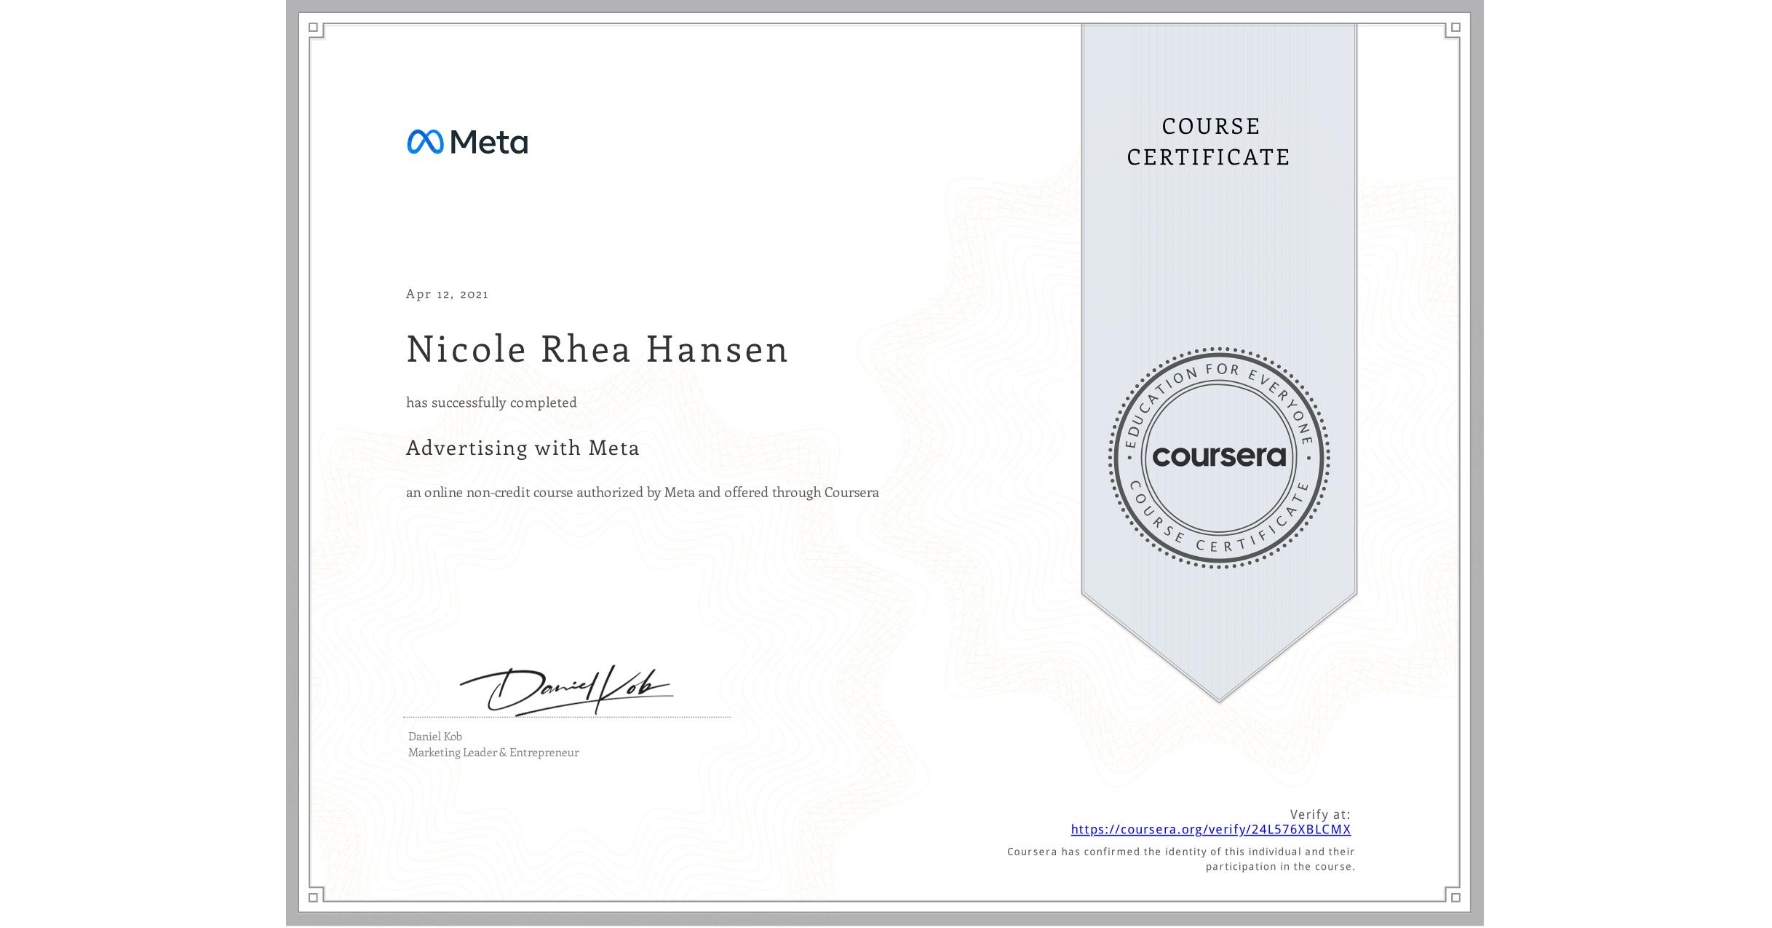 View certificate for Nicole Rhea Hansen, Advertising with Facebook, an online non-credit course authorized by Facebook and offered through Coursera